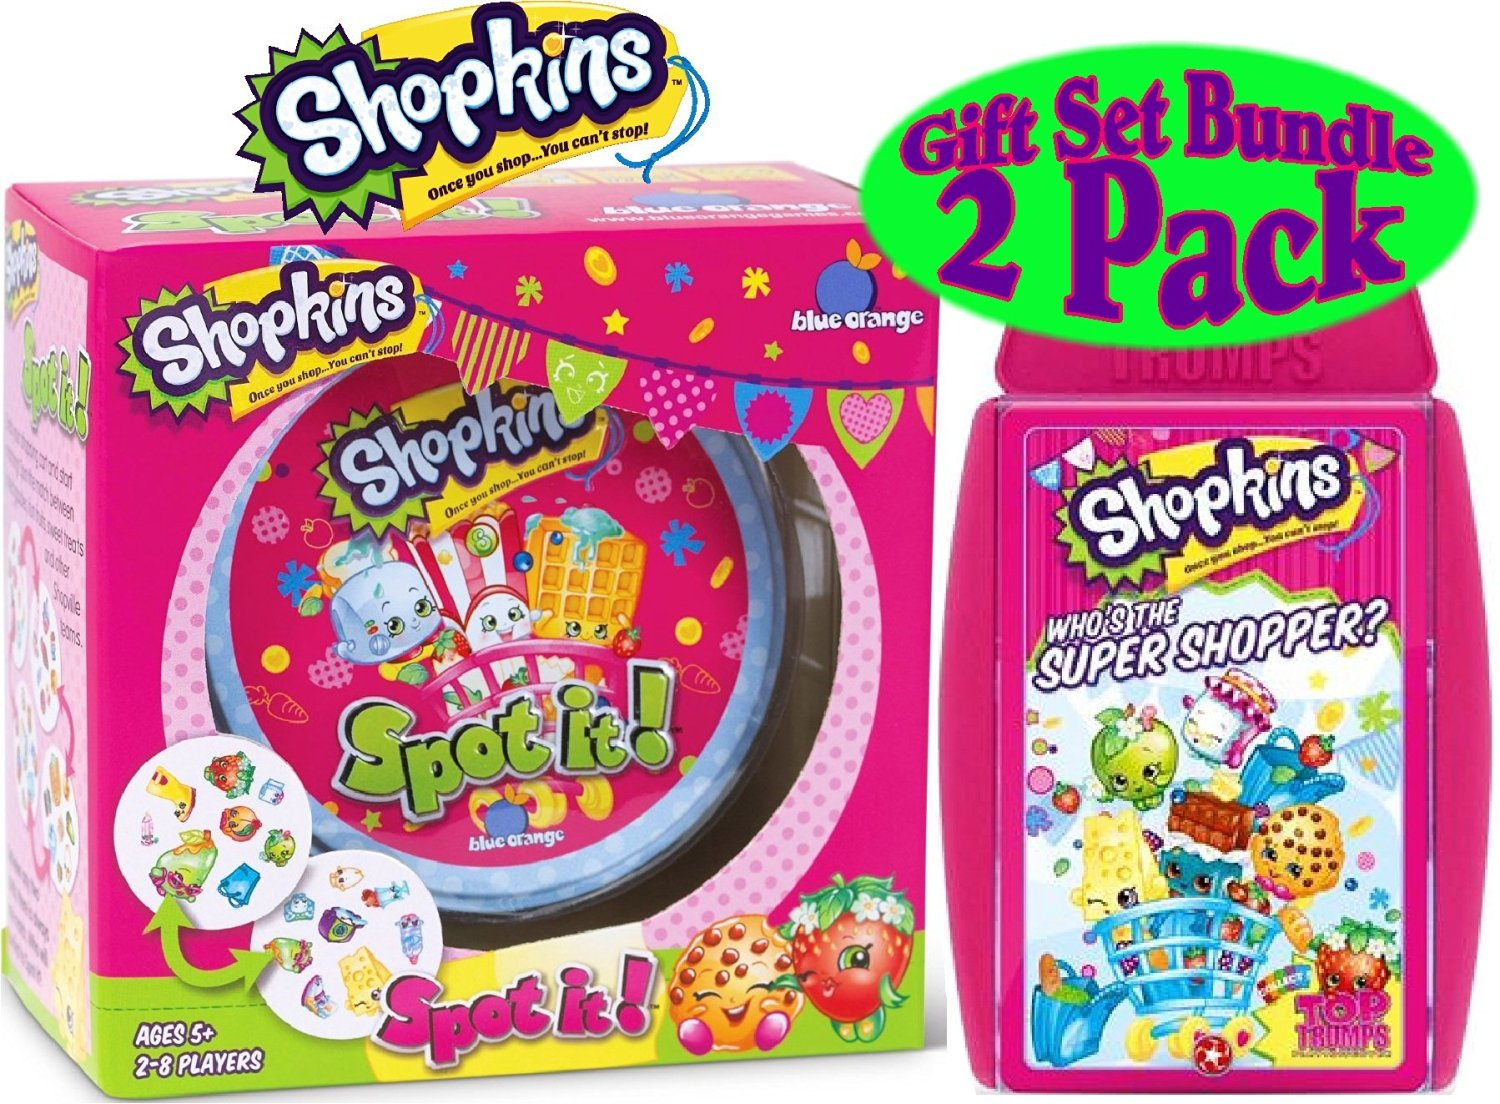 "Top Trumps ""Shopkins"" & Blue Orange Spot It! ""Shopkins"" Card Games Gift Set Bundle - 2 Pack"